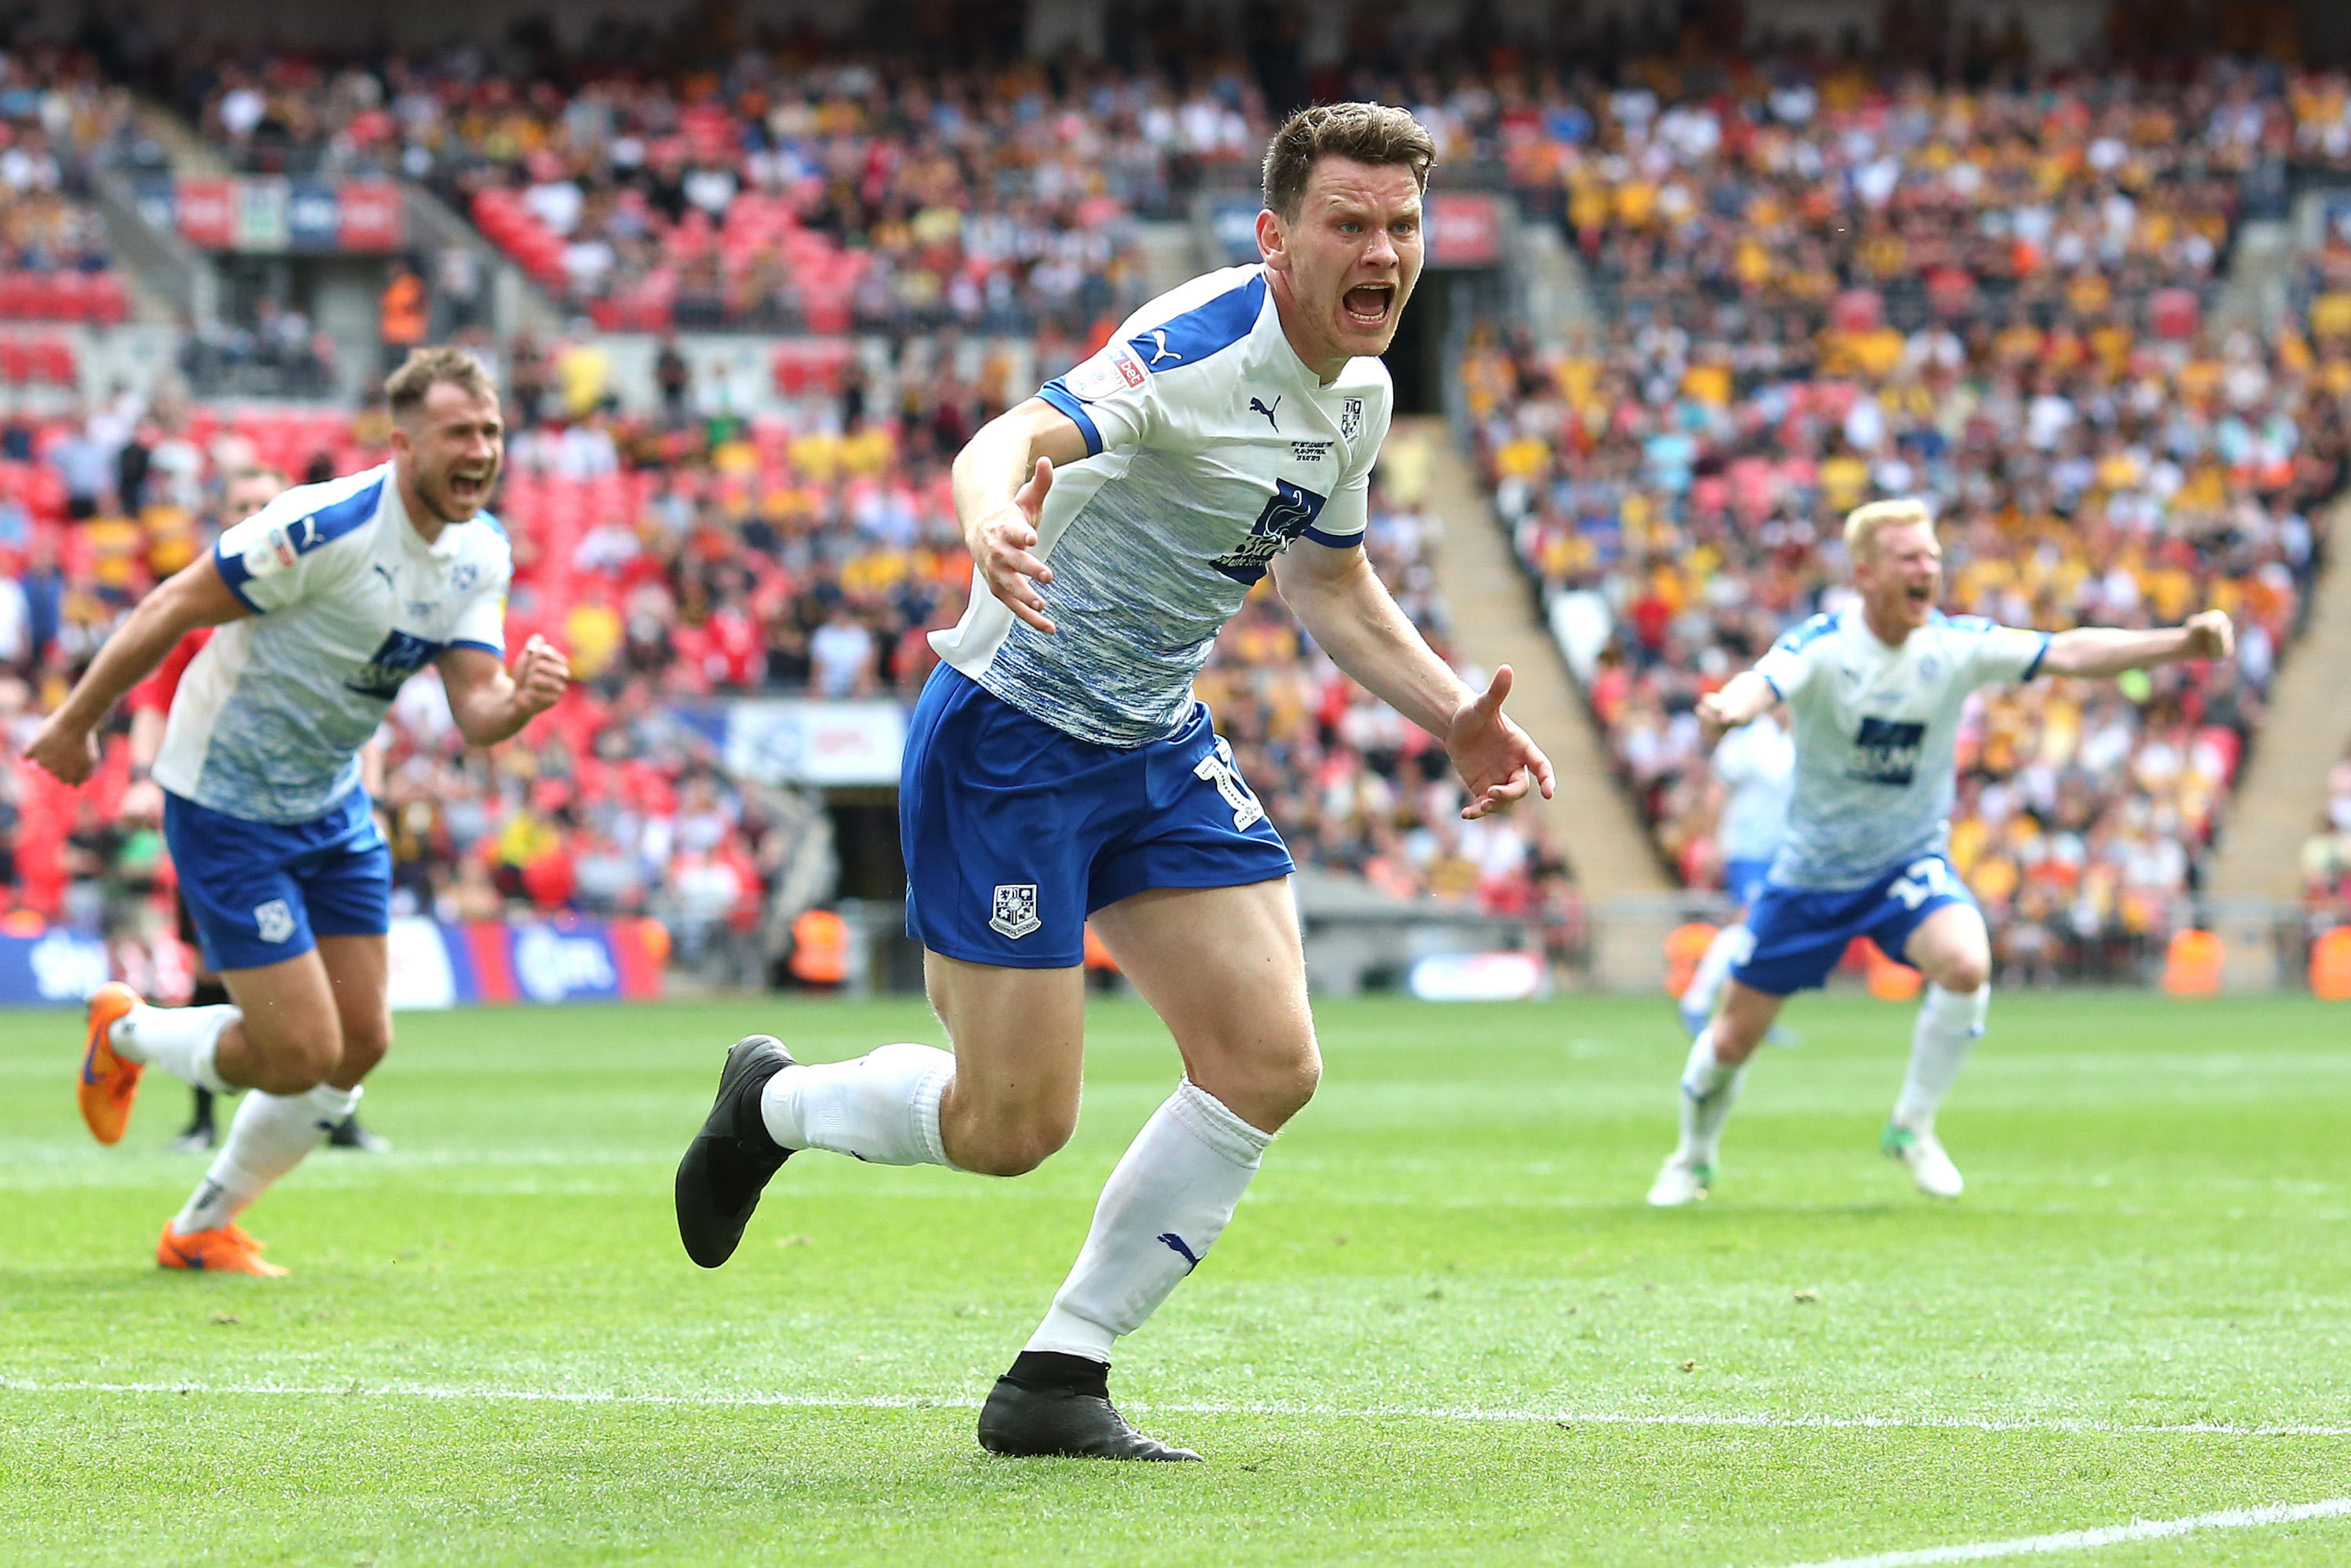 Tranmere Rovers v Newport County - Sky Bet League Two Play-off Final